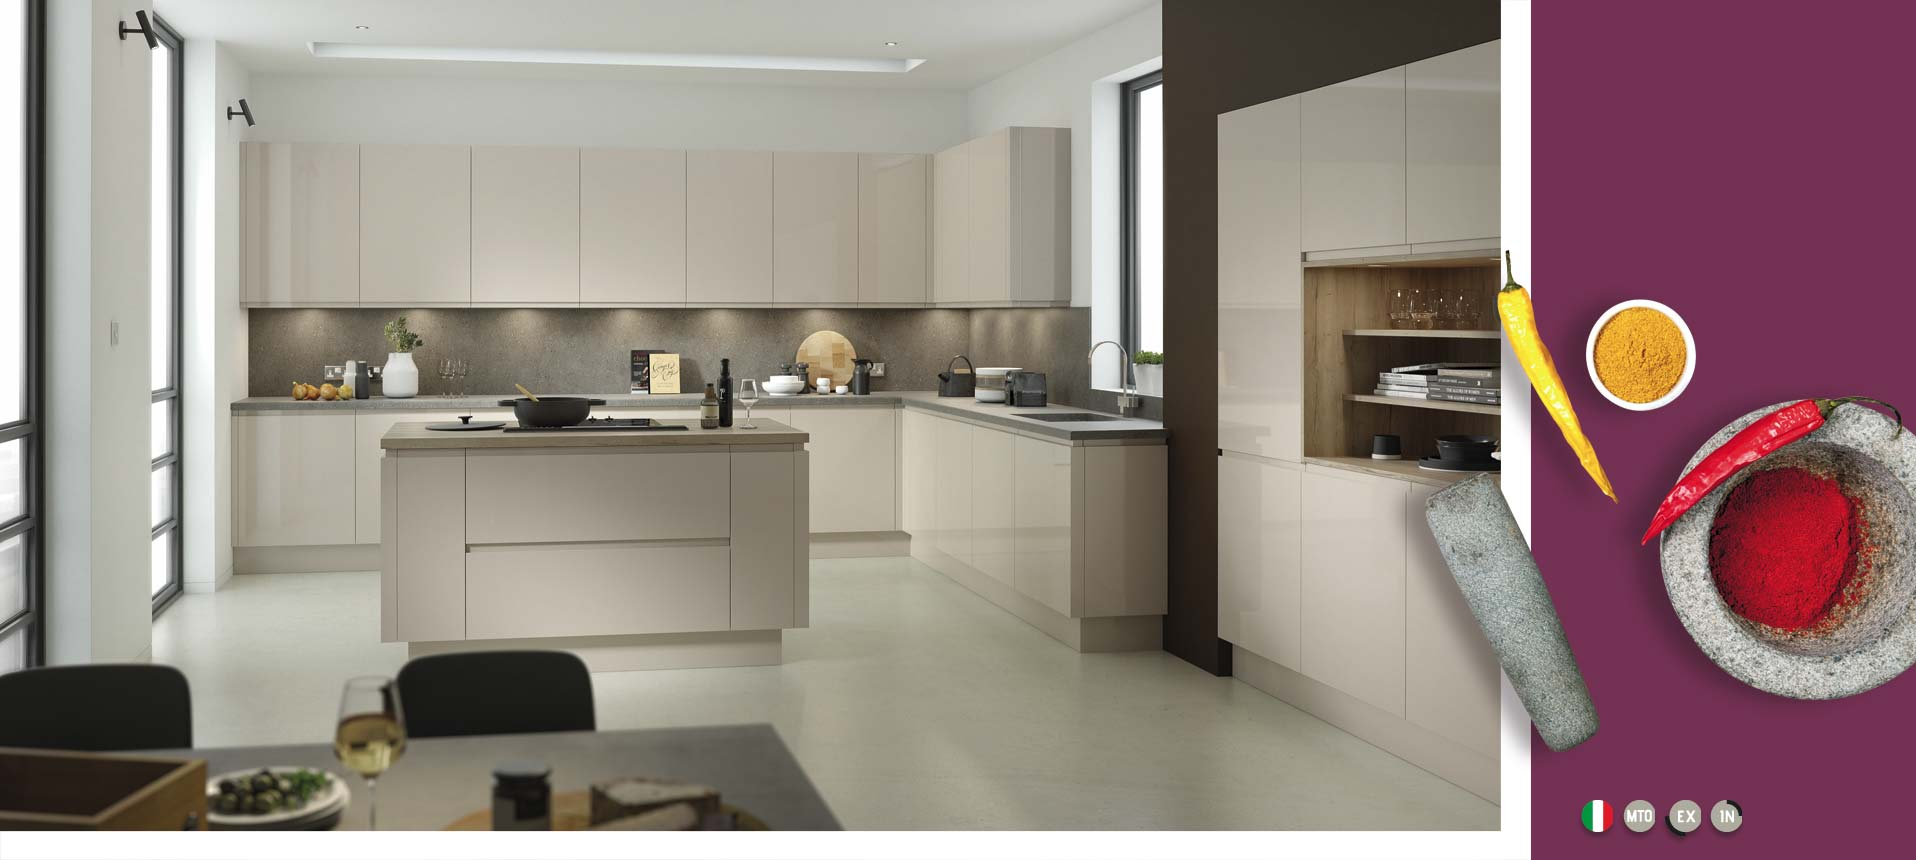 Lucente Pavilion Gloss Kitchens On Trend Kitchen Collection